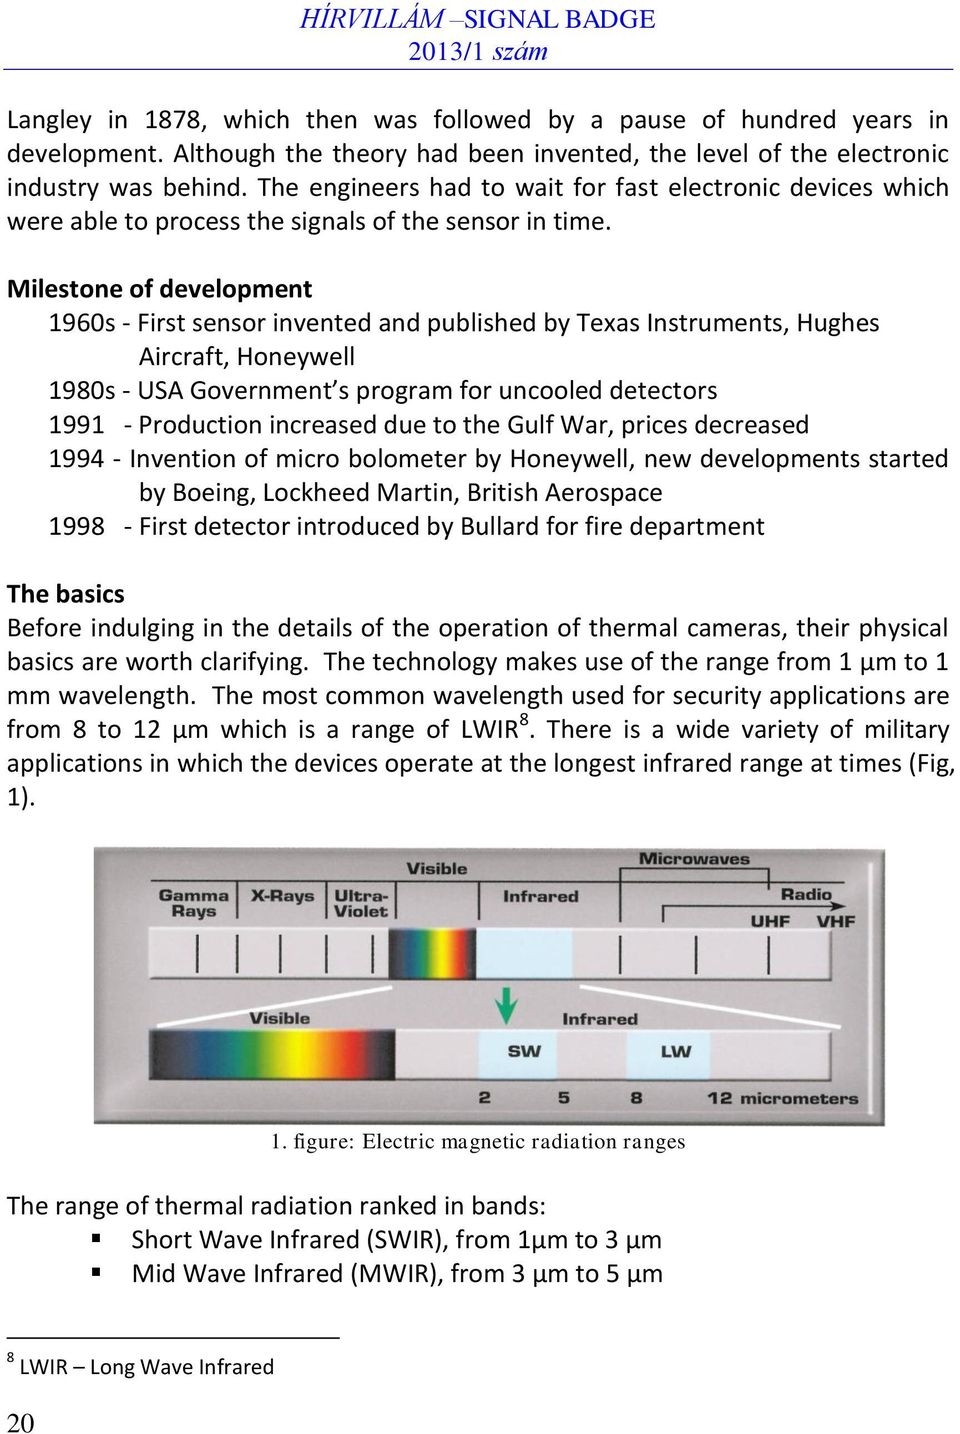 Milestone of development 1960s - First sensor invented and published by Texas Instruments, Hughes Aircraft, Honeywell 1980s - USA Government s program for uncooled detectors 1991 - Production